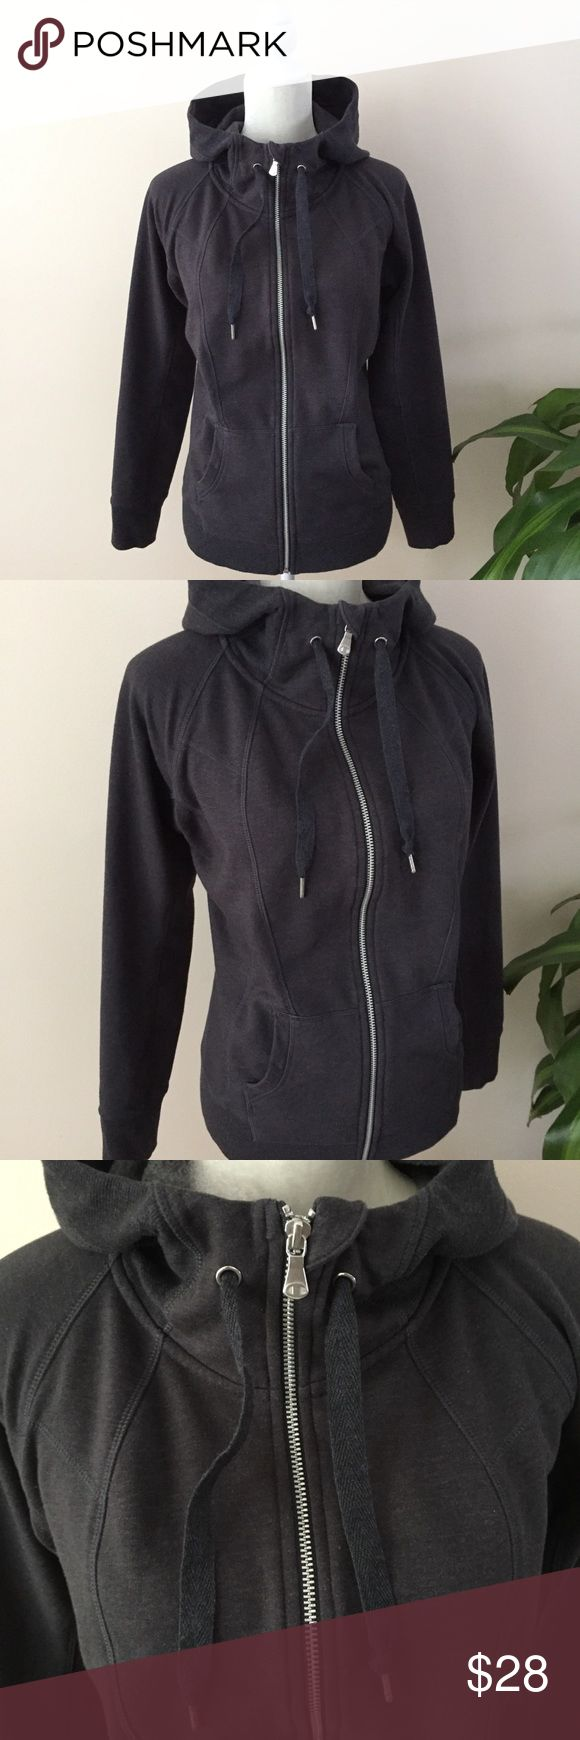 Champion Dark Grey Zip Up Hoodie Champion Charcoal Grey Funnel Zip Up Hoodie   Charcoal grey. Cozy thick feel. Funnel neck zip. Front pockets. No flaws! Size M. Length: 25 in Bust: 19 in flat Champion Tops Sweatshirts & Hoodies